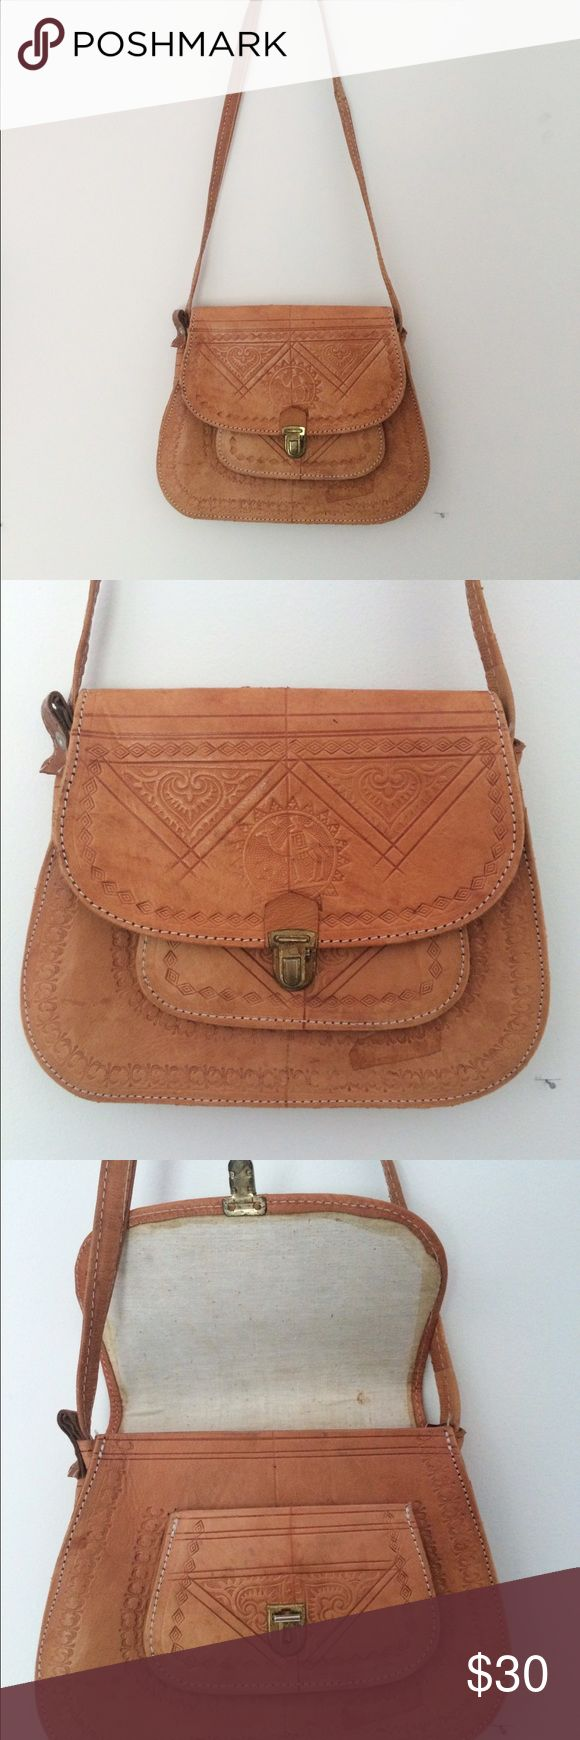 Vintage 1960's/1970's tooled leather saddle bag Circa 1970's tan leather saddle bag with Aztec style tool detail. Comes with shoulder strap and fastens with a metal briefcase clasp. The back has some water damage as depicted and some wear on the strap. Bags Shoulder Bags